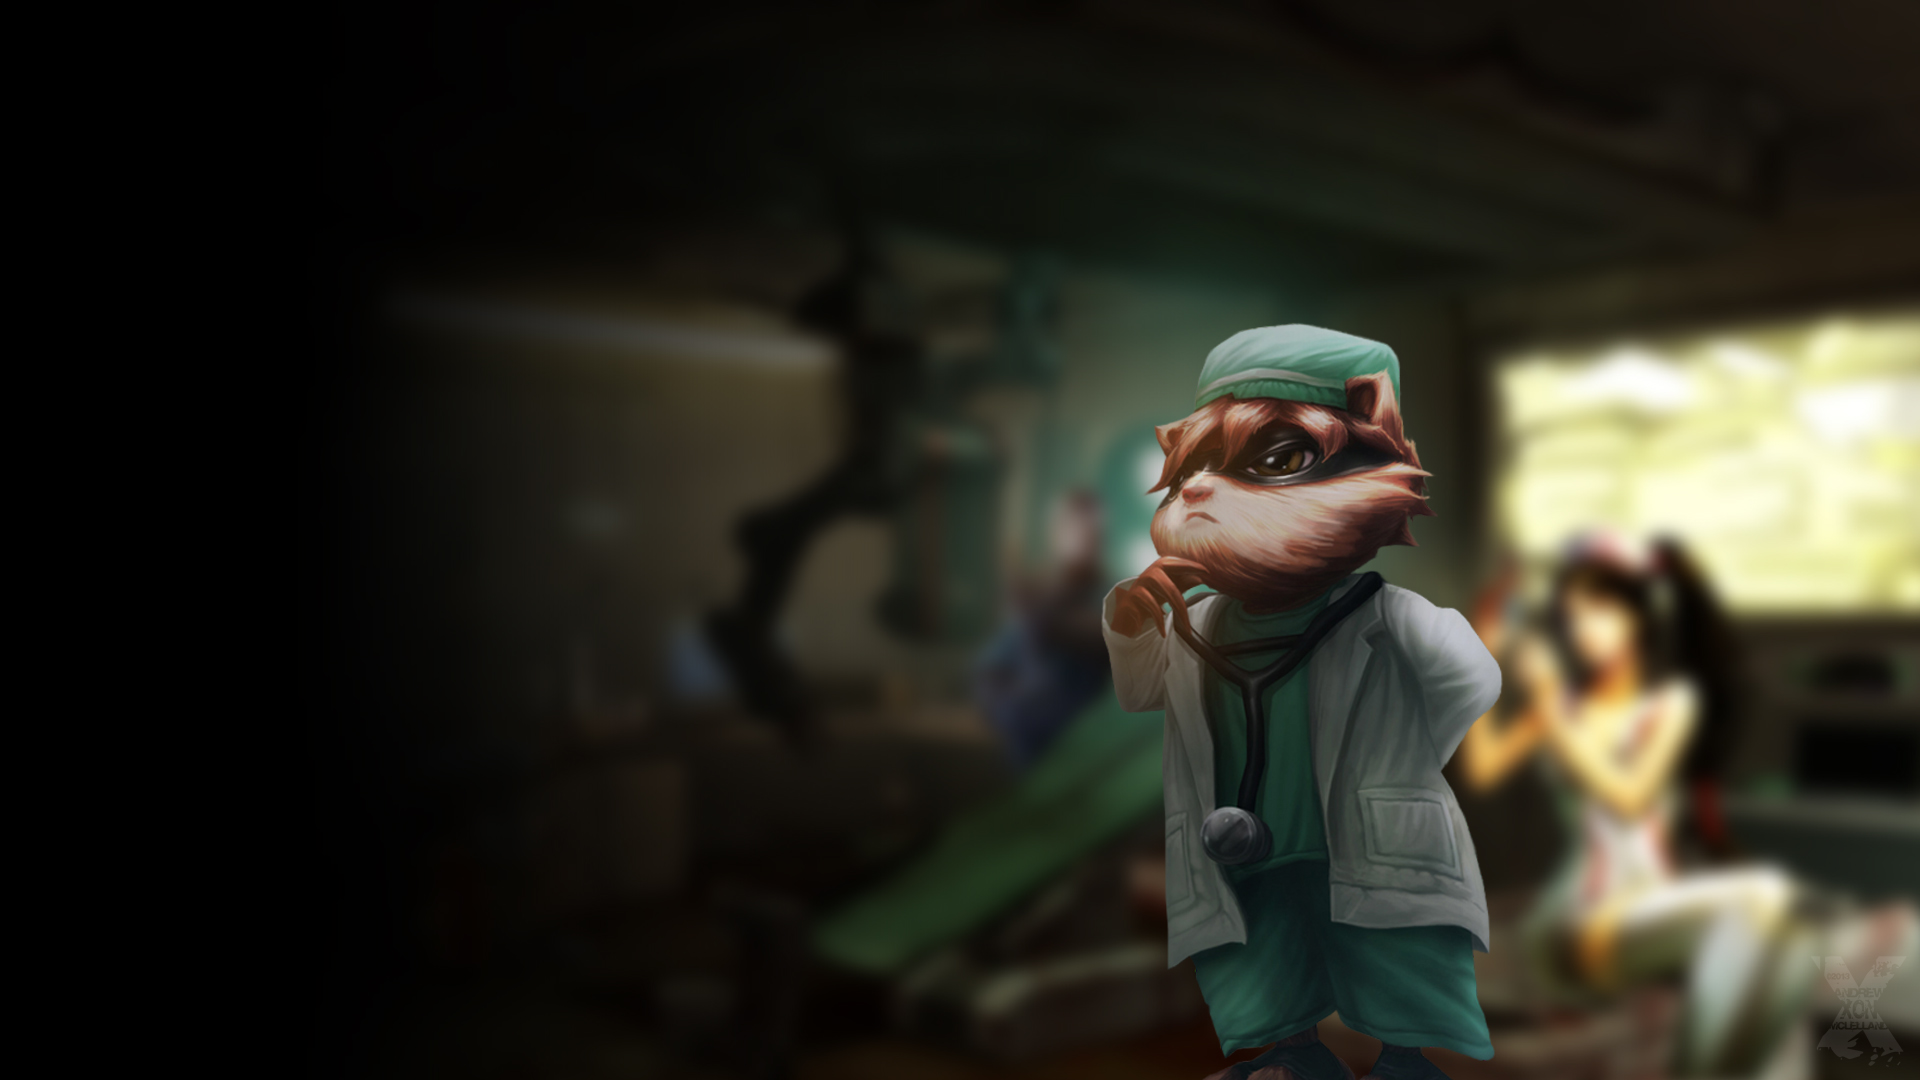 Kinkou Order Hospital by Andrew Xon McLelland - League of Legends ... Orianna Splash Art